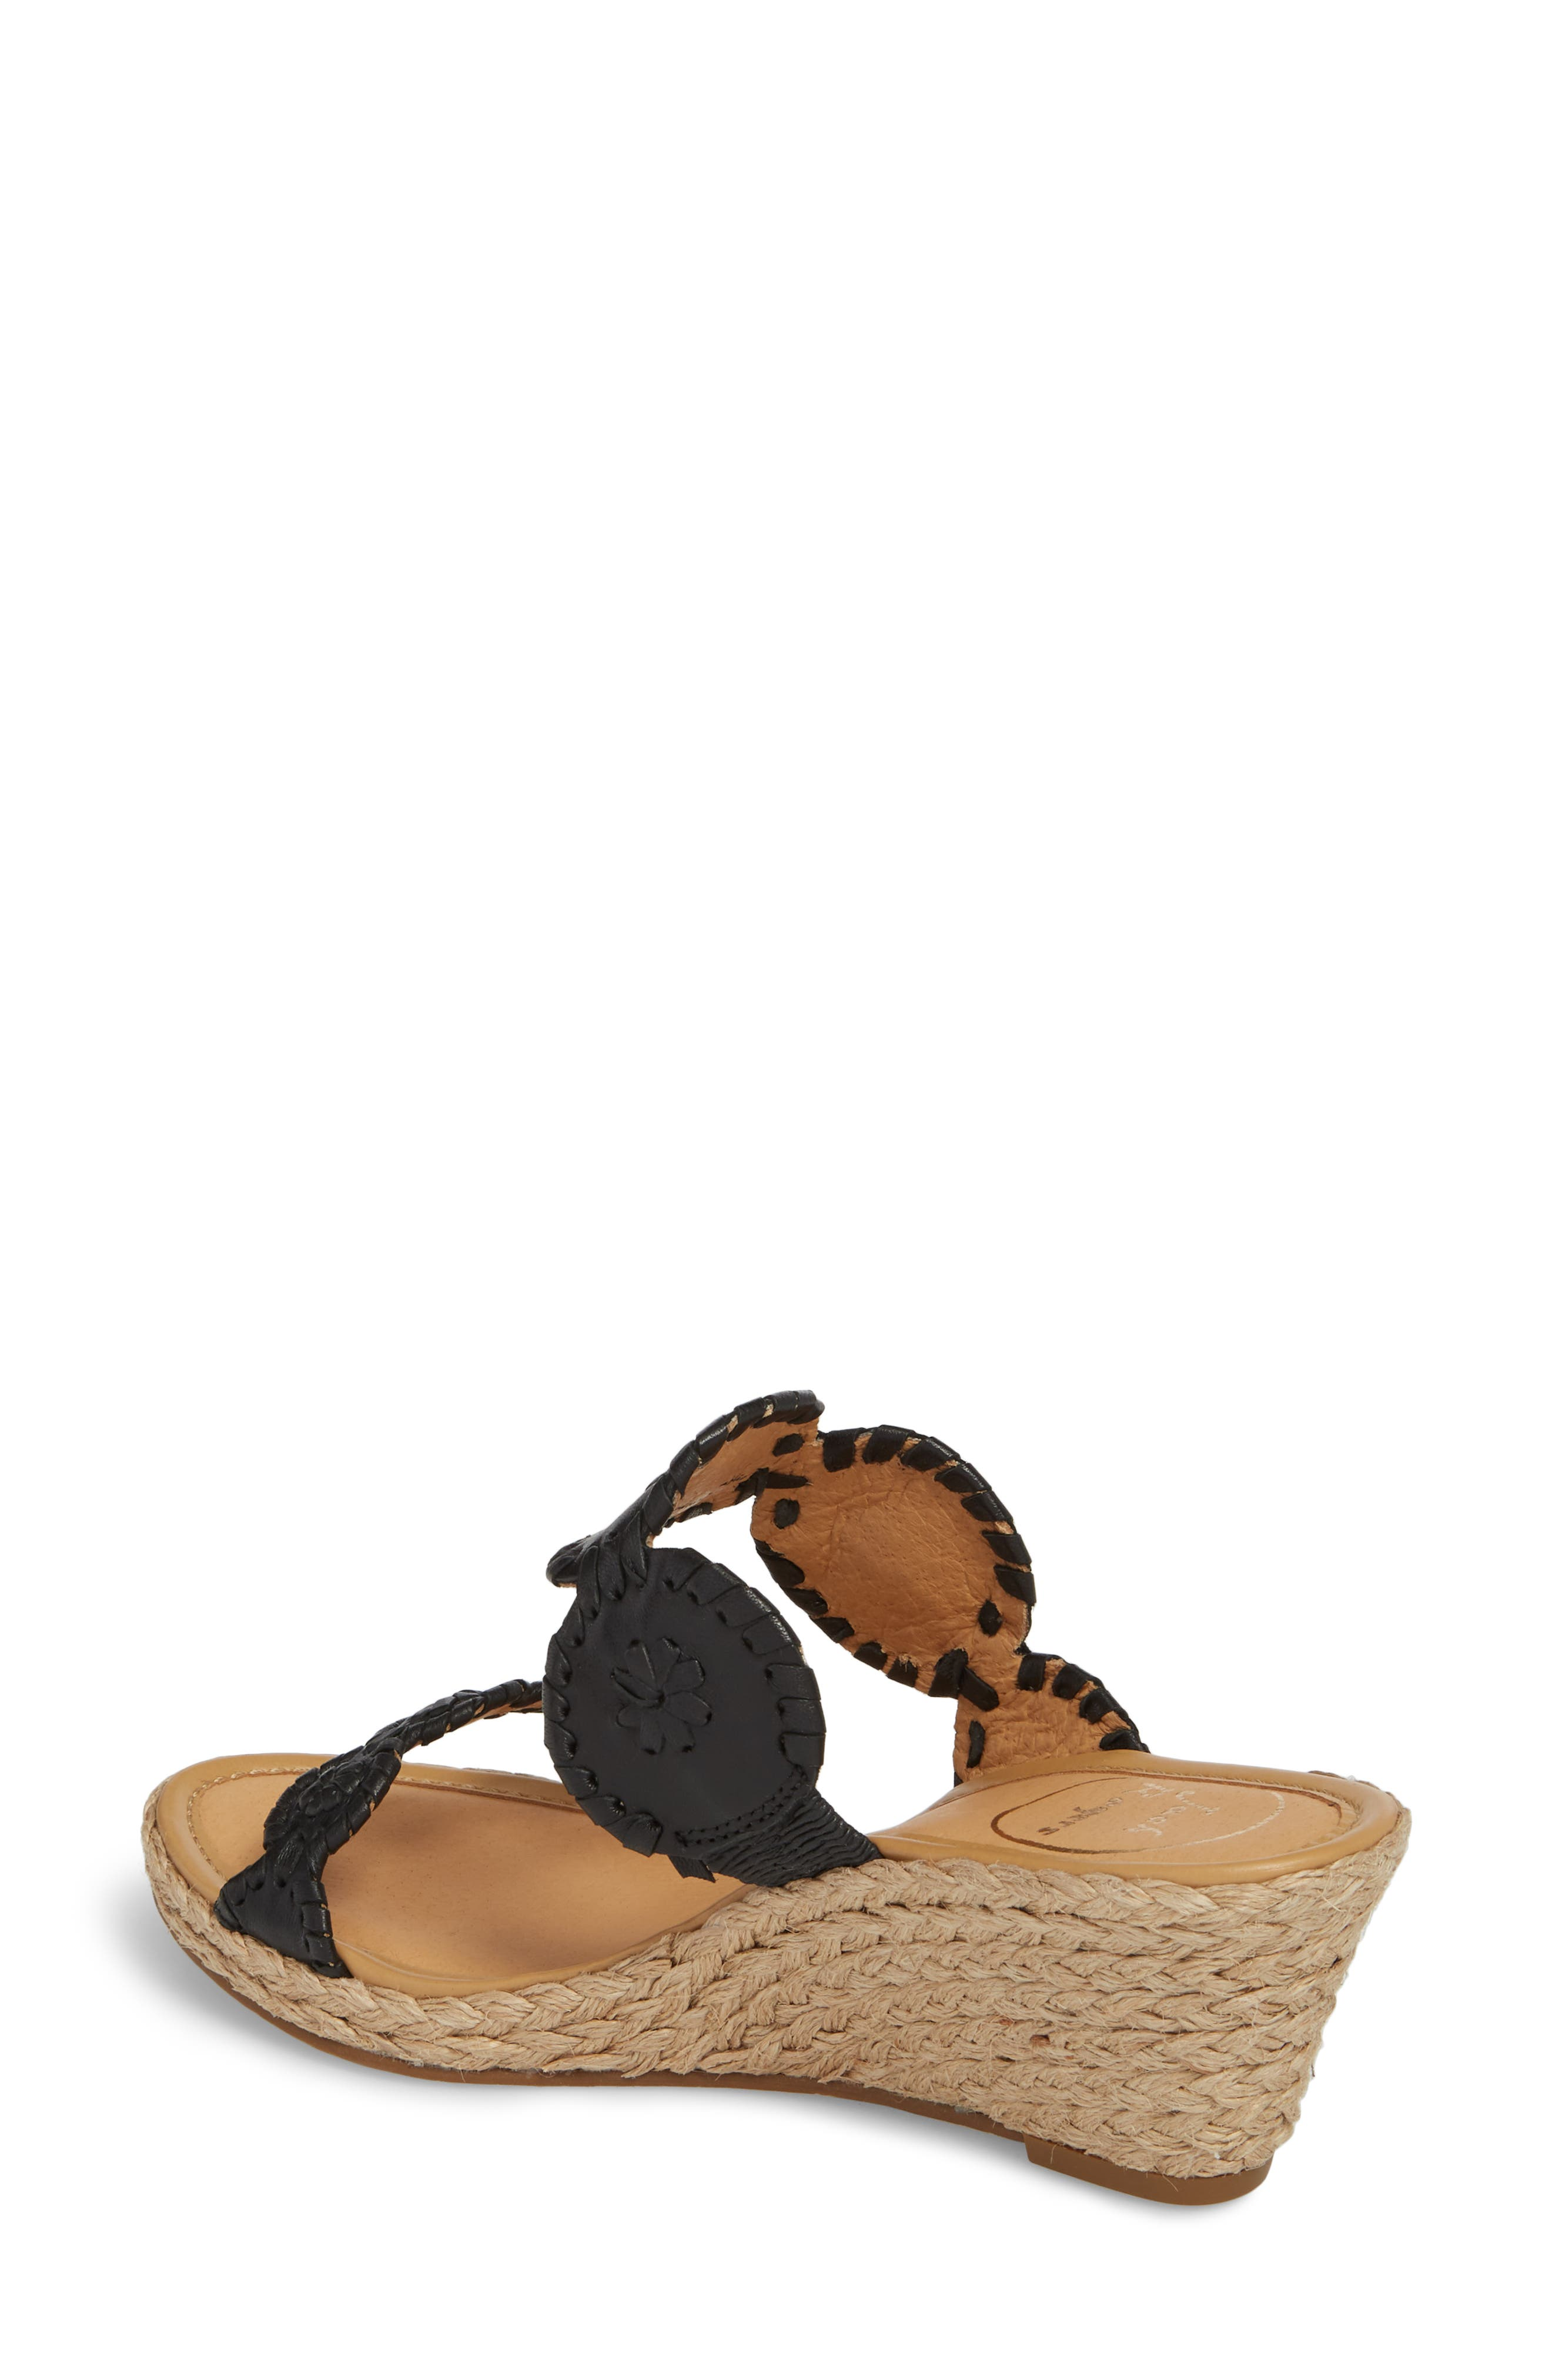 'Shelby' Whipstitched Wedge Sandal,                             Alternate thumbnail 2, color,                             Black Leather